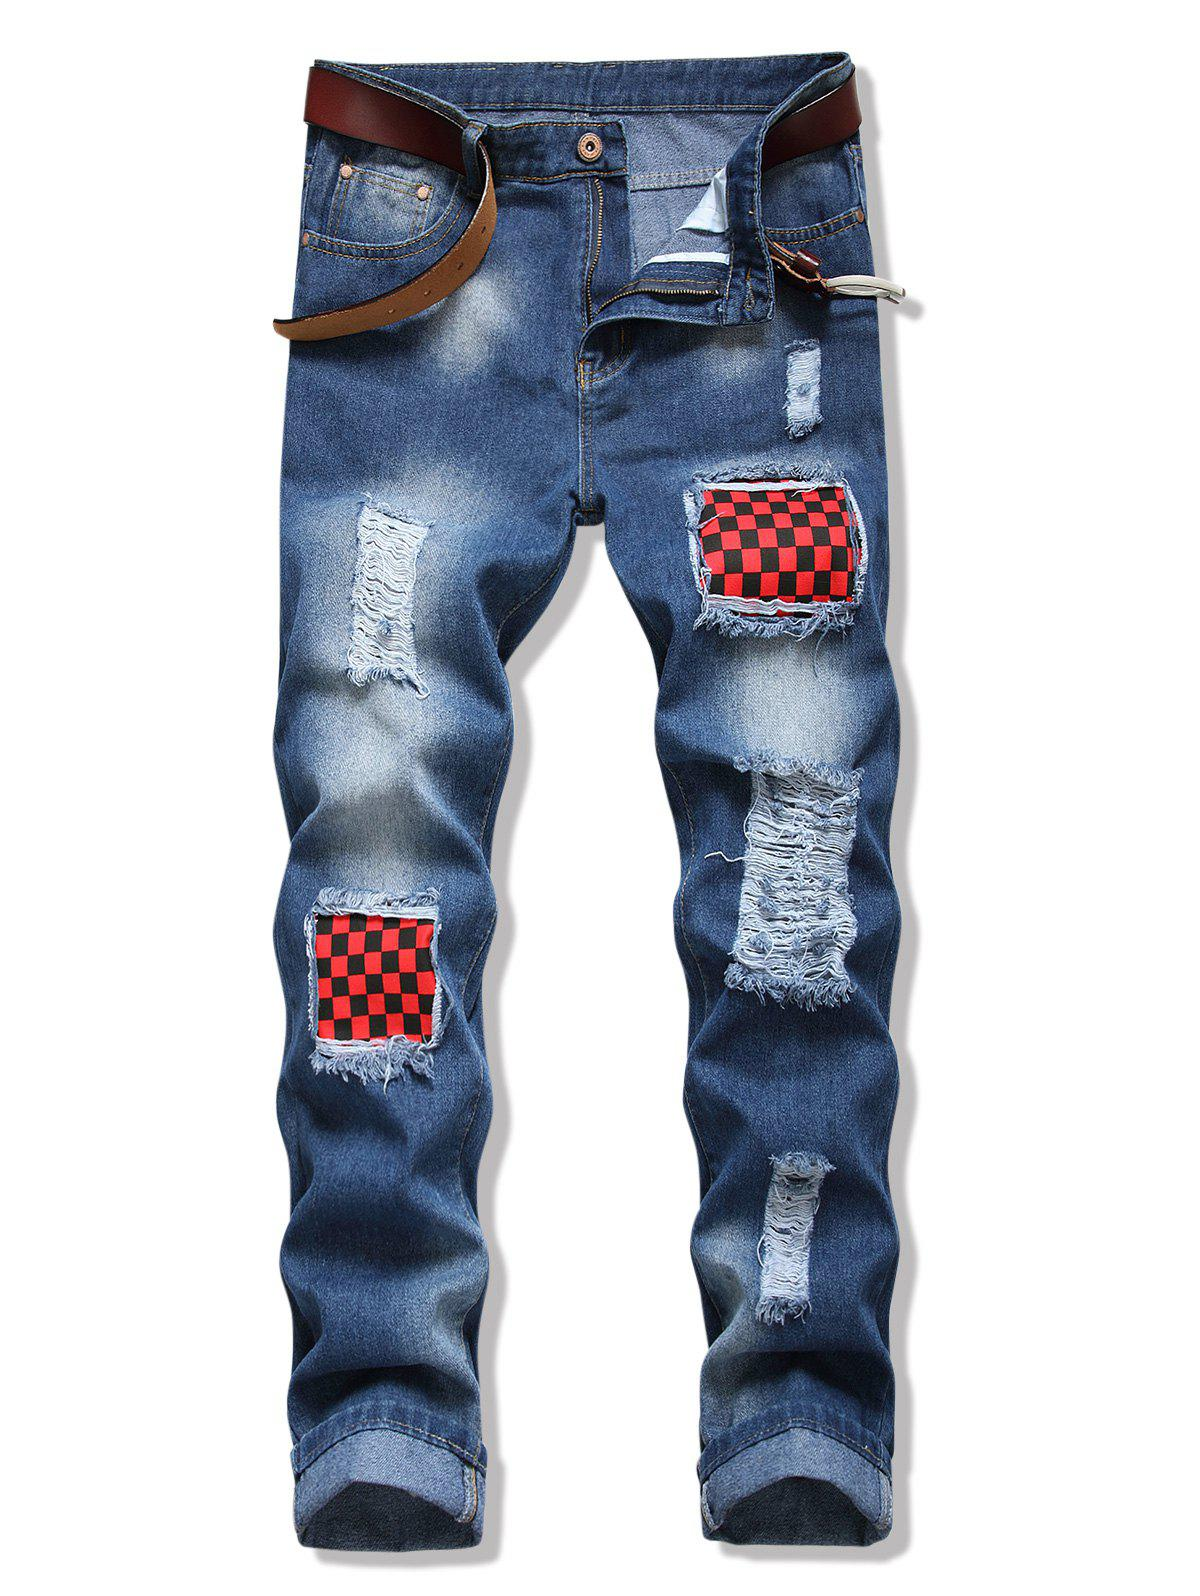 Distressed Checkerboard Patchwork Long Jeans - DENIM BLUE 36